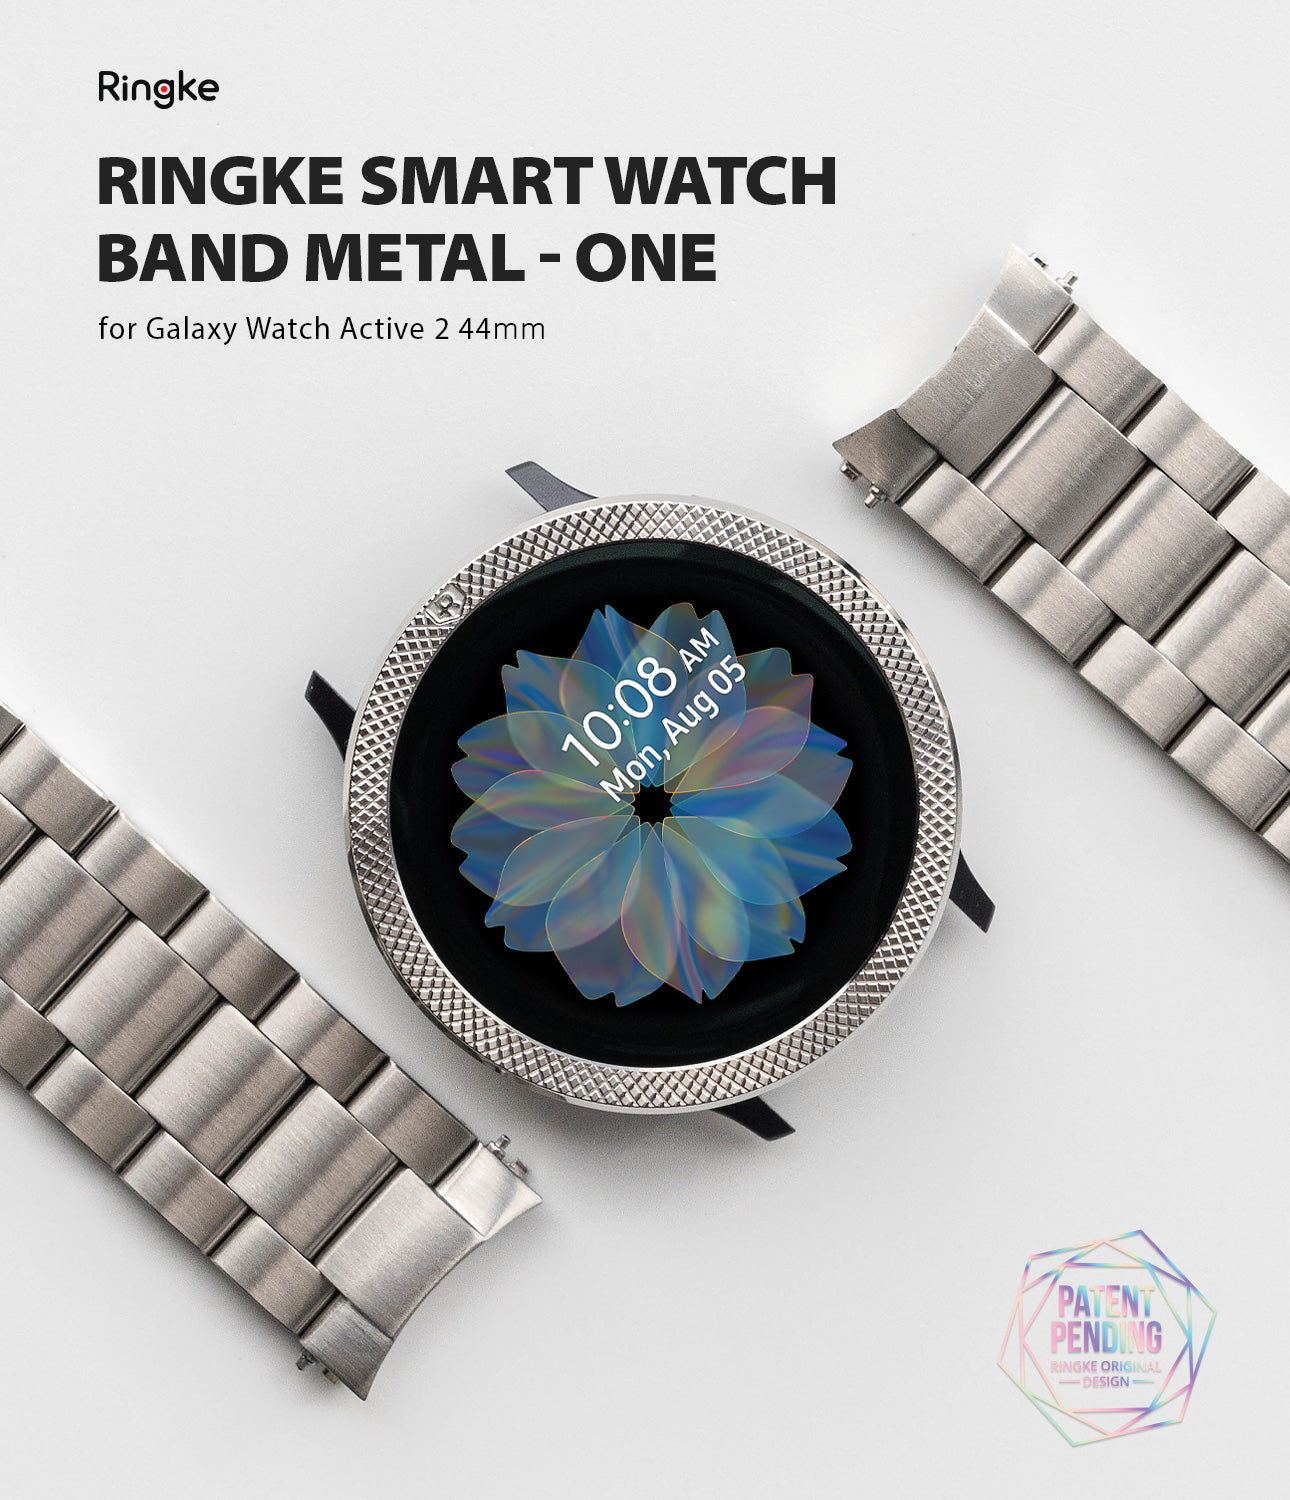 Ringke Smart Watch Band Metal-One for Galaxy Watch Active 2 (44mm).